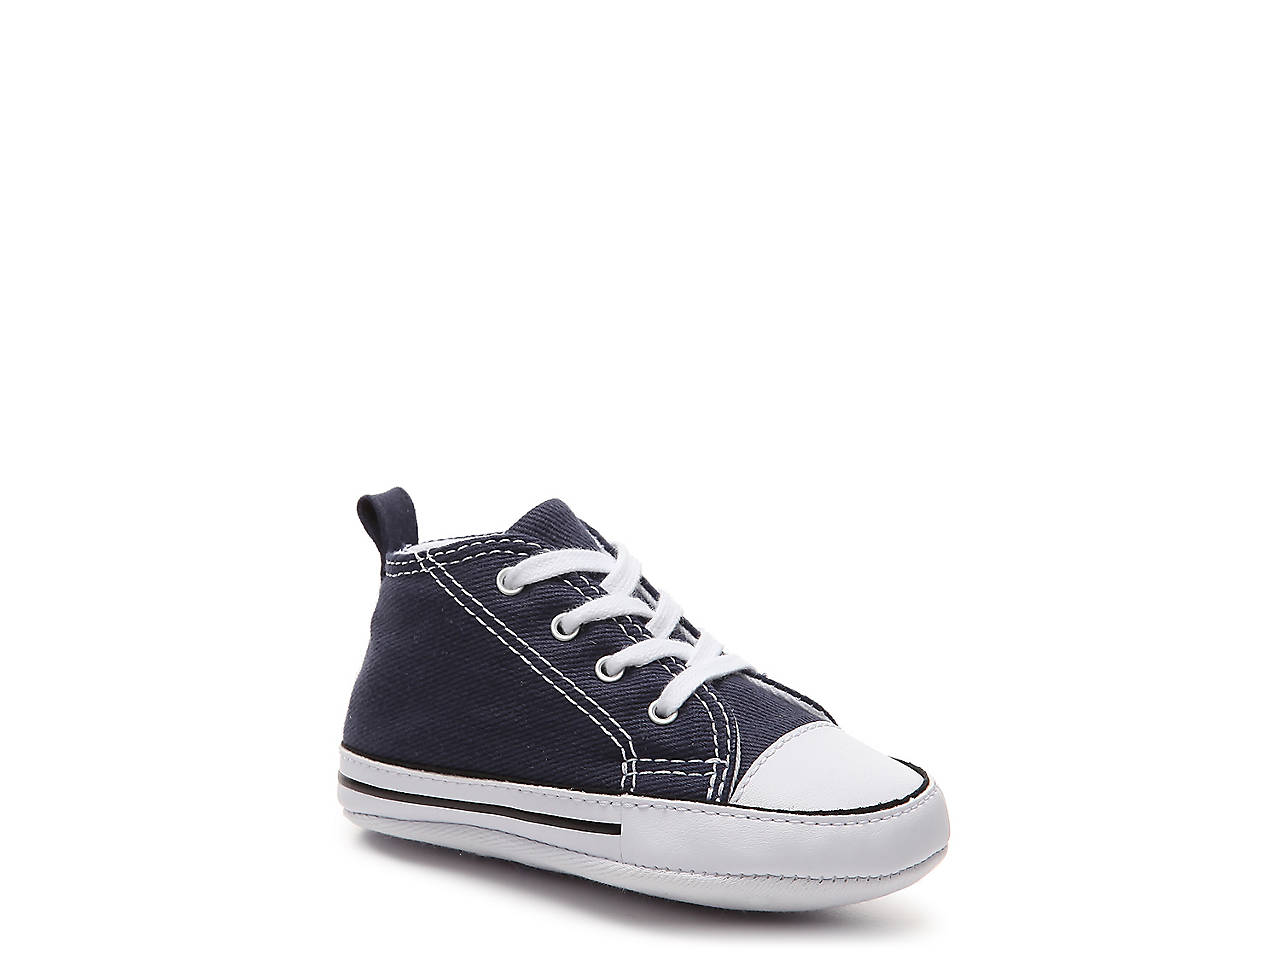 41d1e9230781 Converse Chuck Taylor All Star First Star Infant Crib Shoe Kids ...